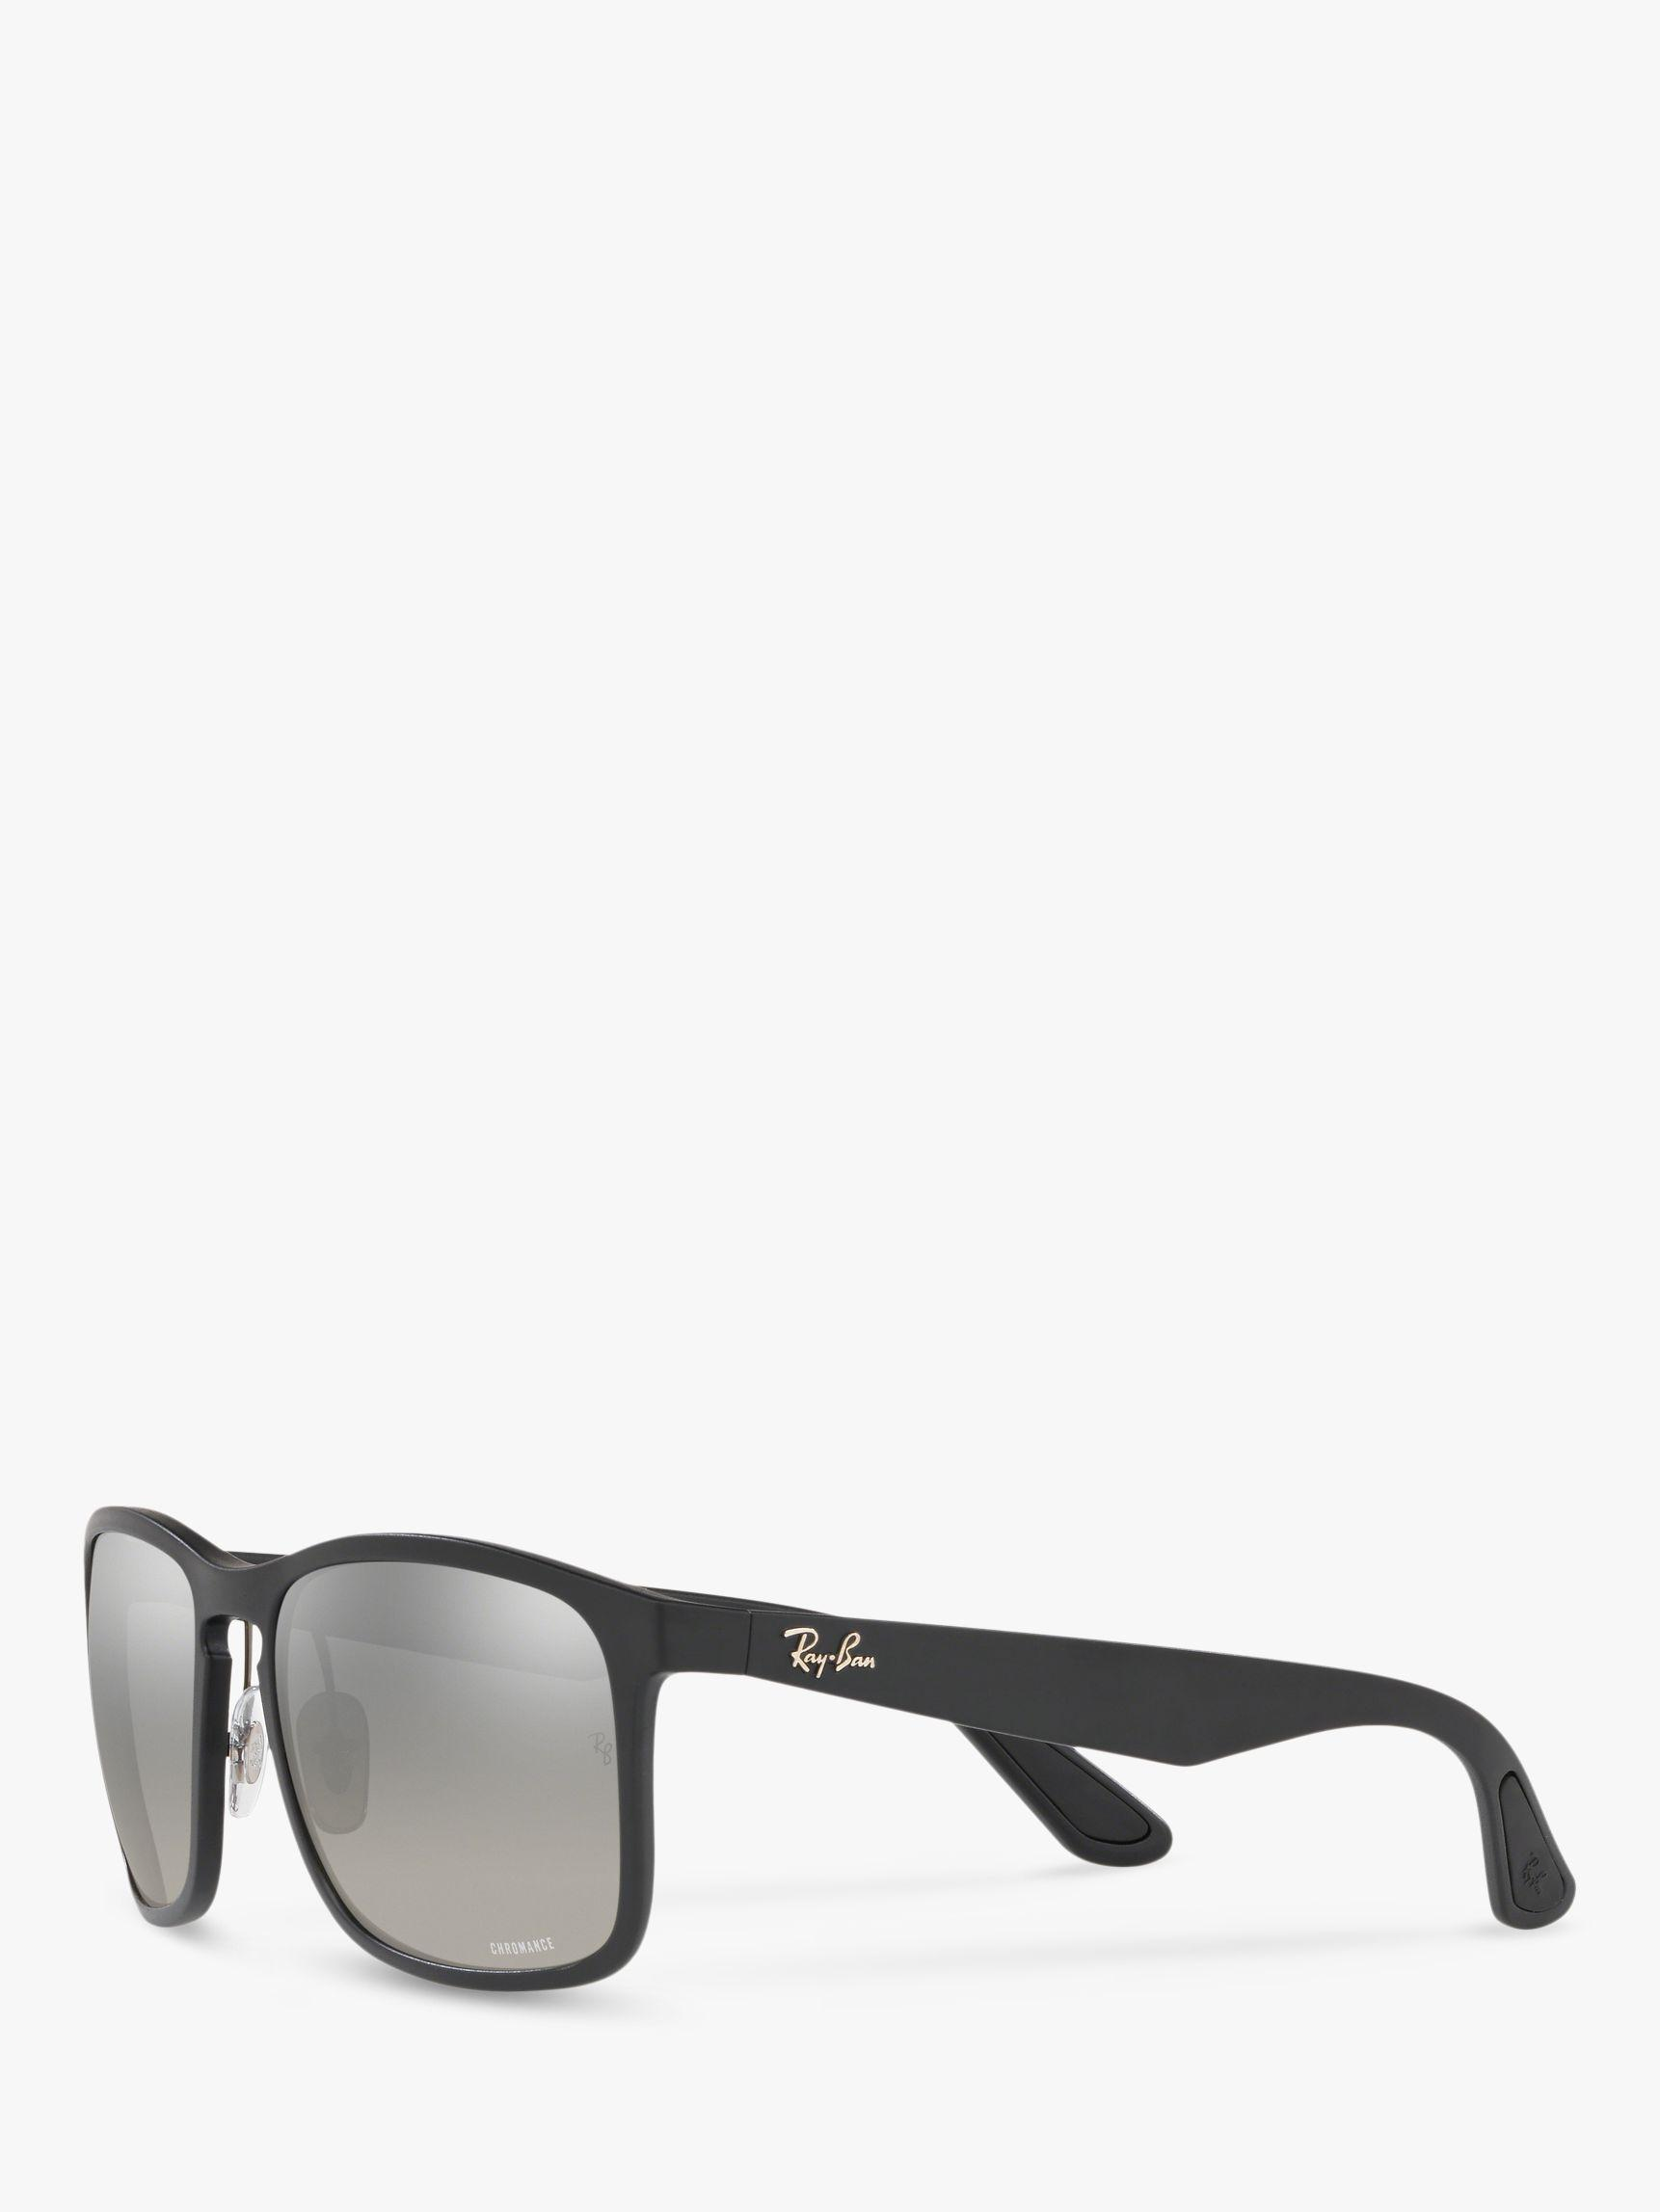 5dadce4901 Ray-Ban - Black Rb4264 Polarised D-frame Sunglasses for Men - Lyst. View  fullscreen